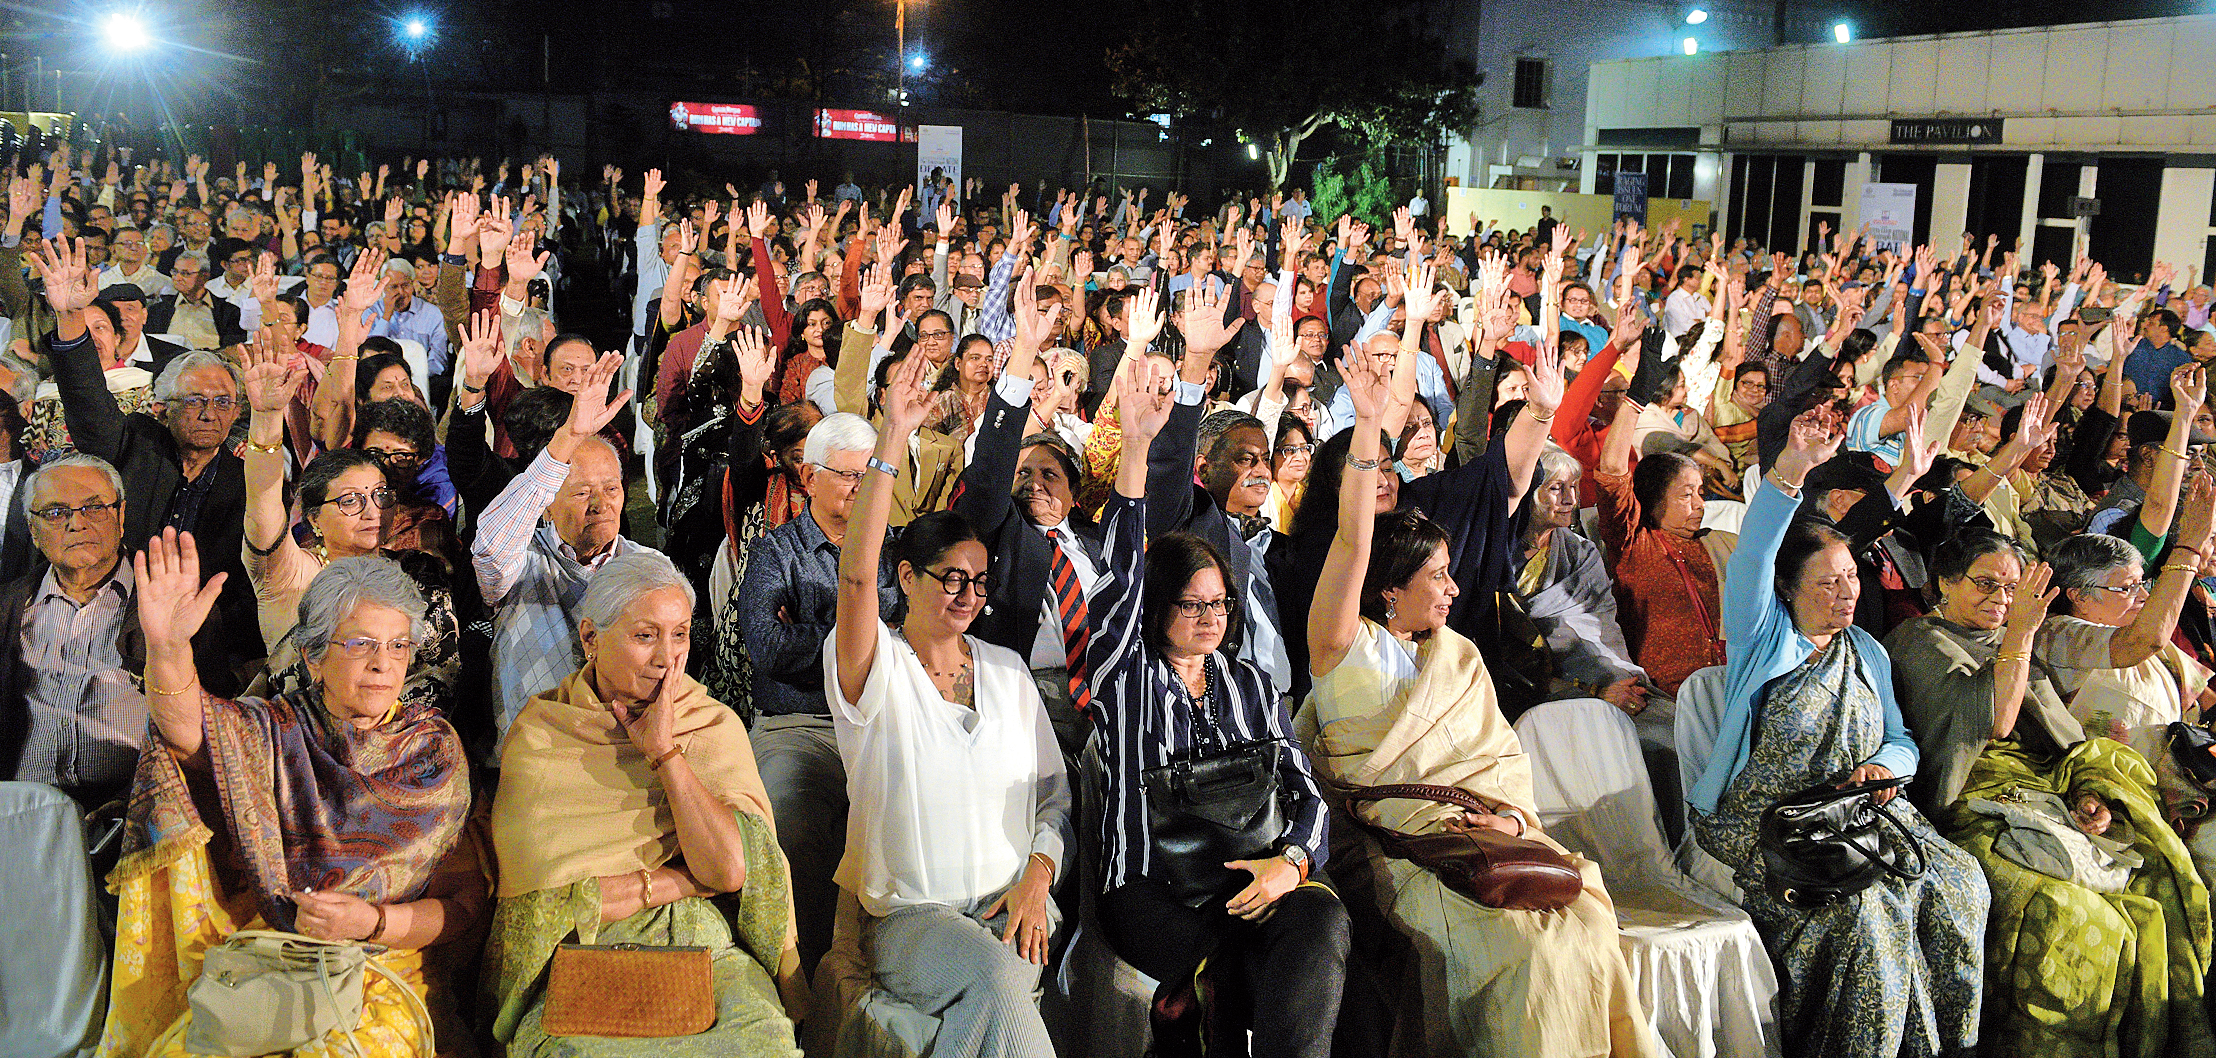 For: The audience at Calcutta Club gave a decisive verdict in favour of the motion on Sunday. Put to vote by moderator Sandip Chatterjee, the hands raised (below) for the proposition clearly outnumbered those raised for the opposition.